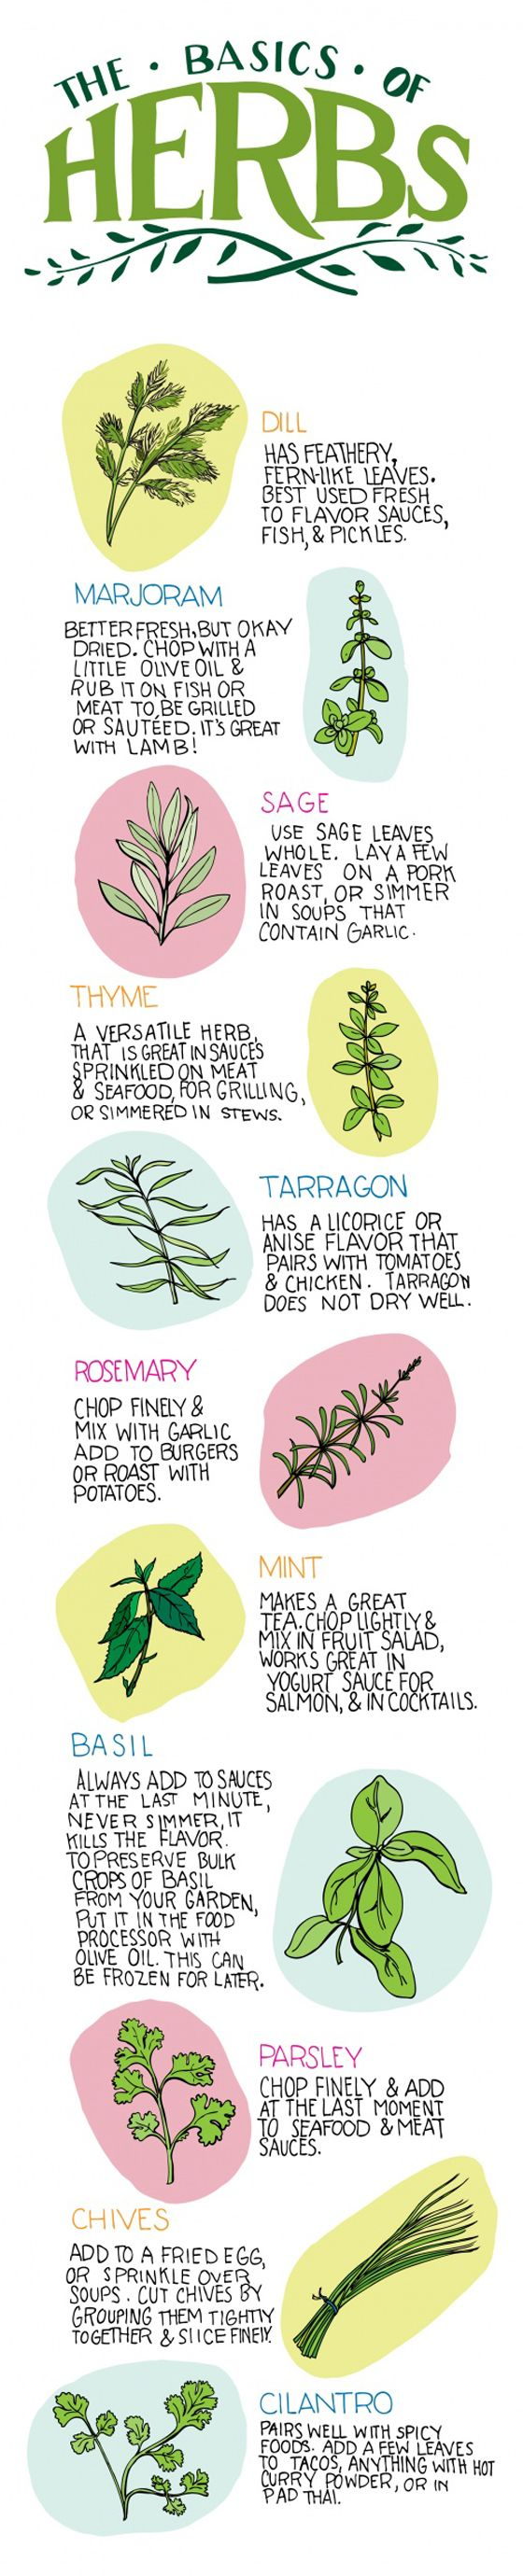 The Basics of Herbs-Illustrated Bites-Design Crush